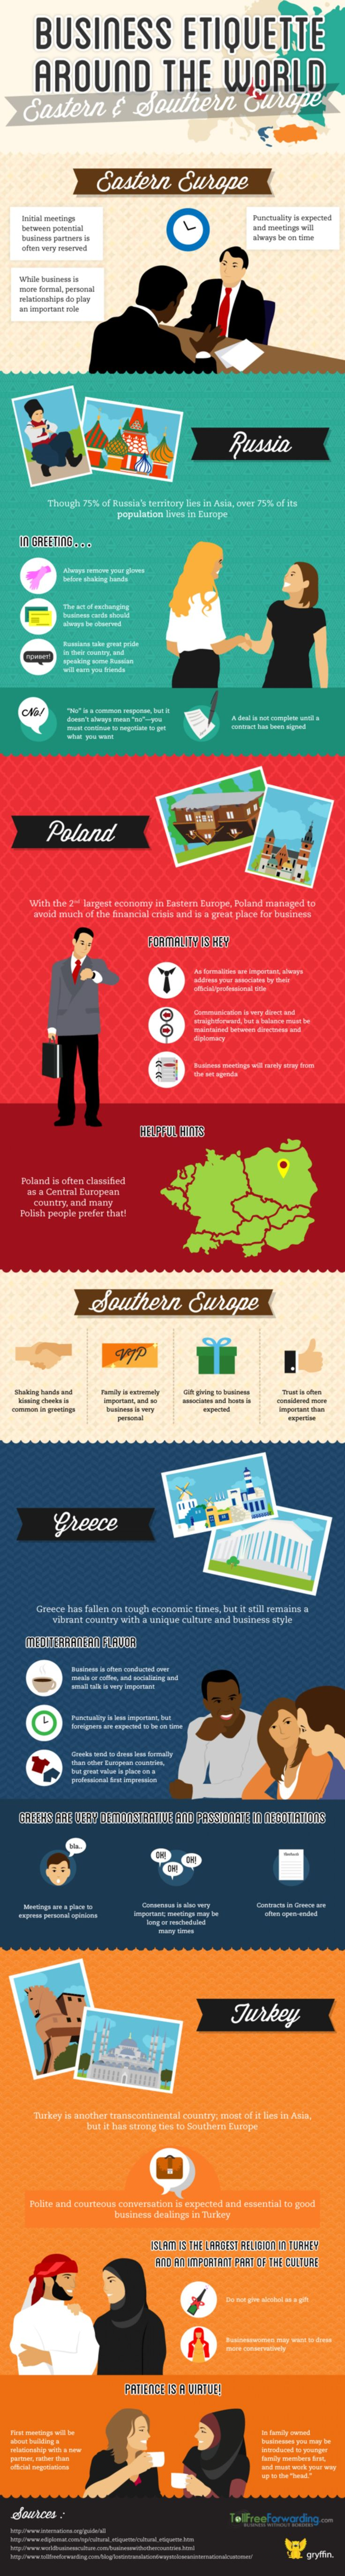 12 best business etiquette images on pinterest career business etiquette eastern southern europe infographic fandeluxe Choice Image